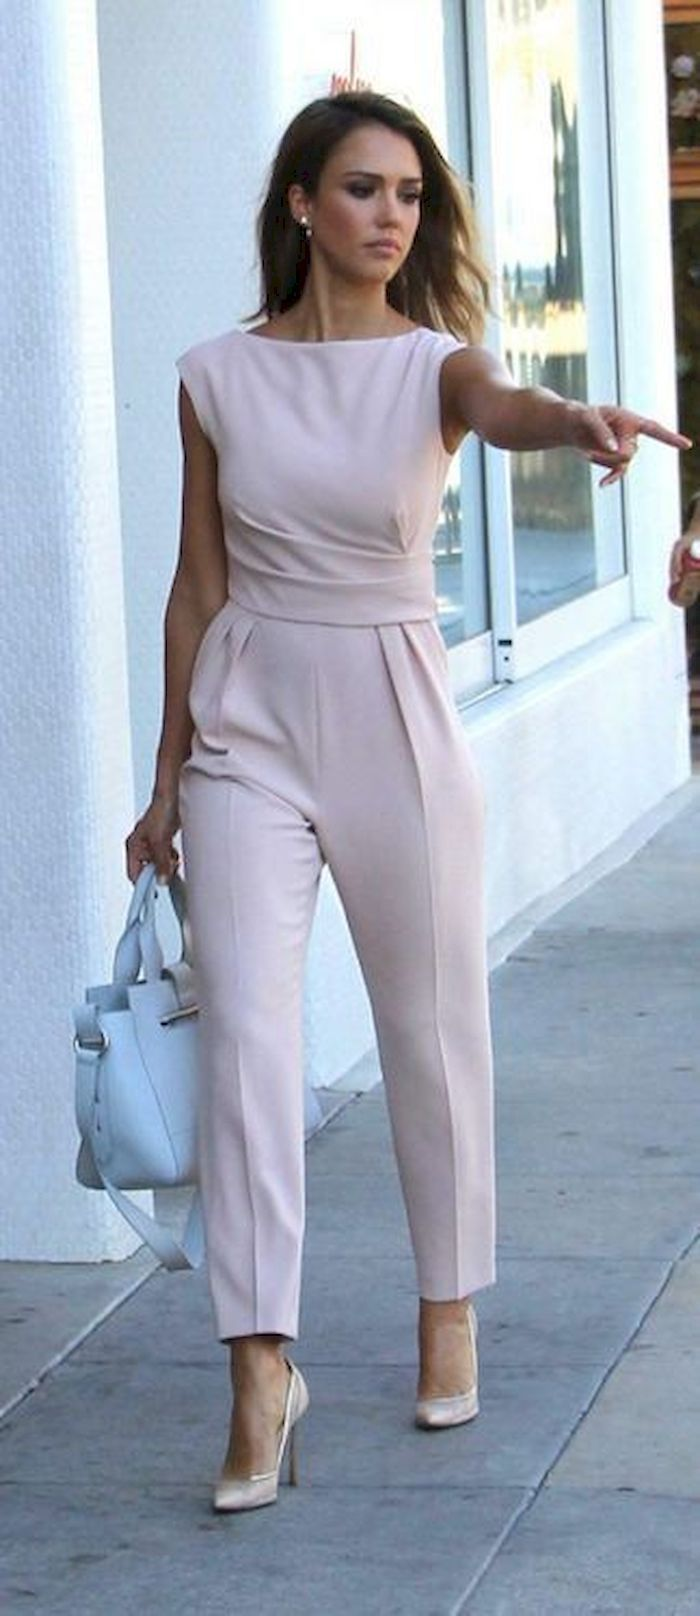 Elegant Business Casual Women Outfit